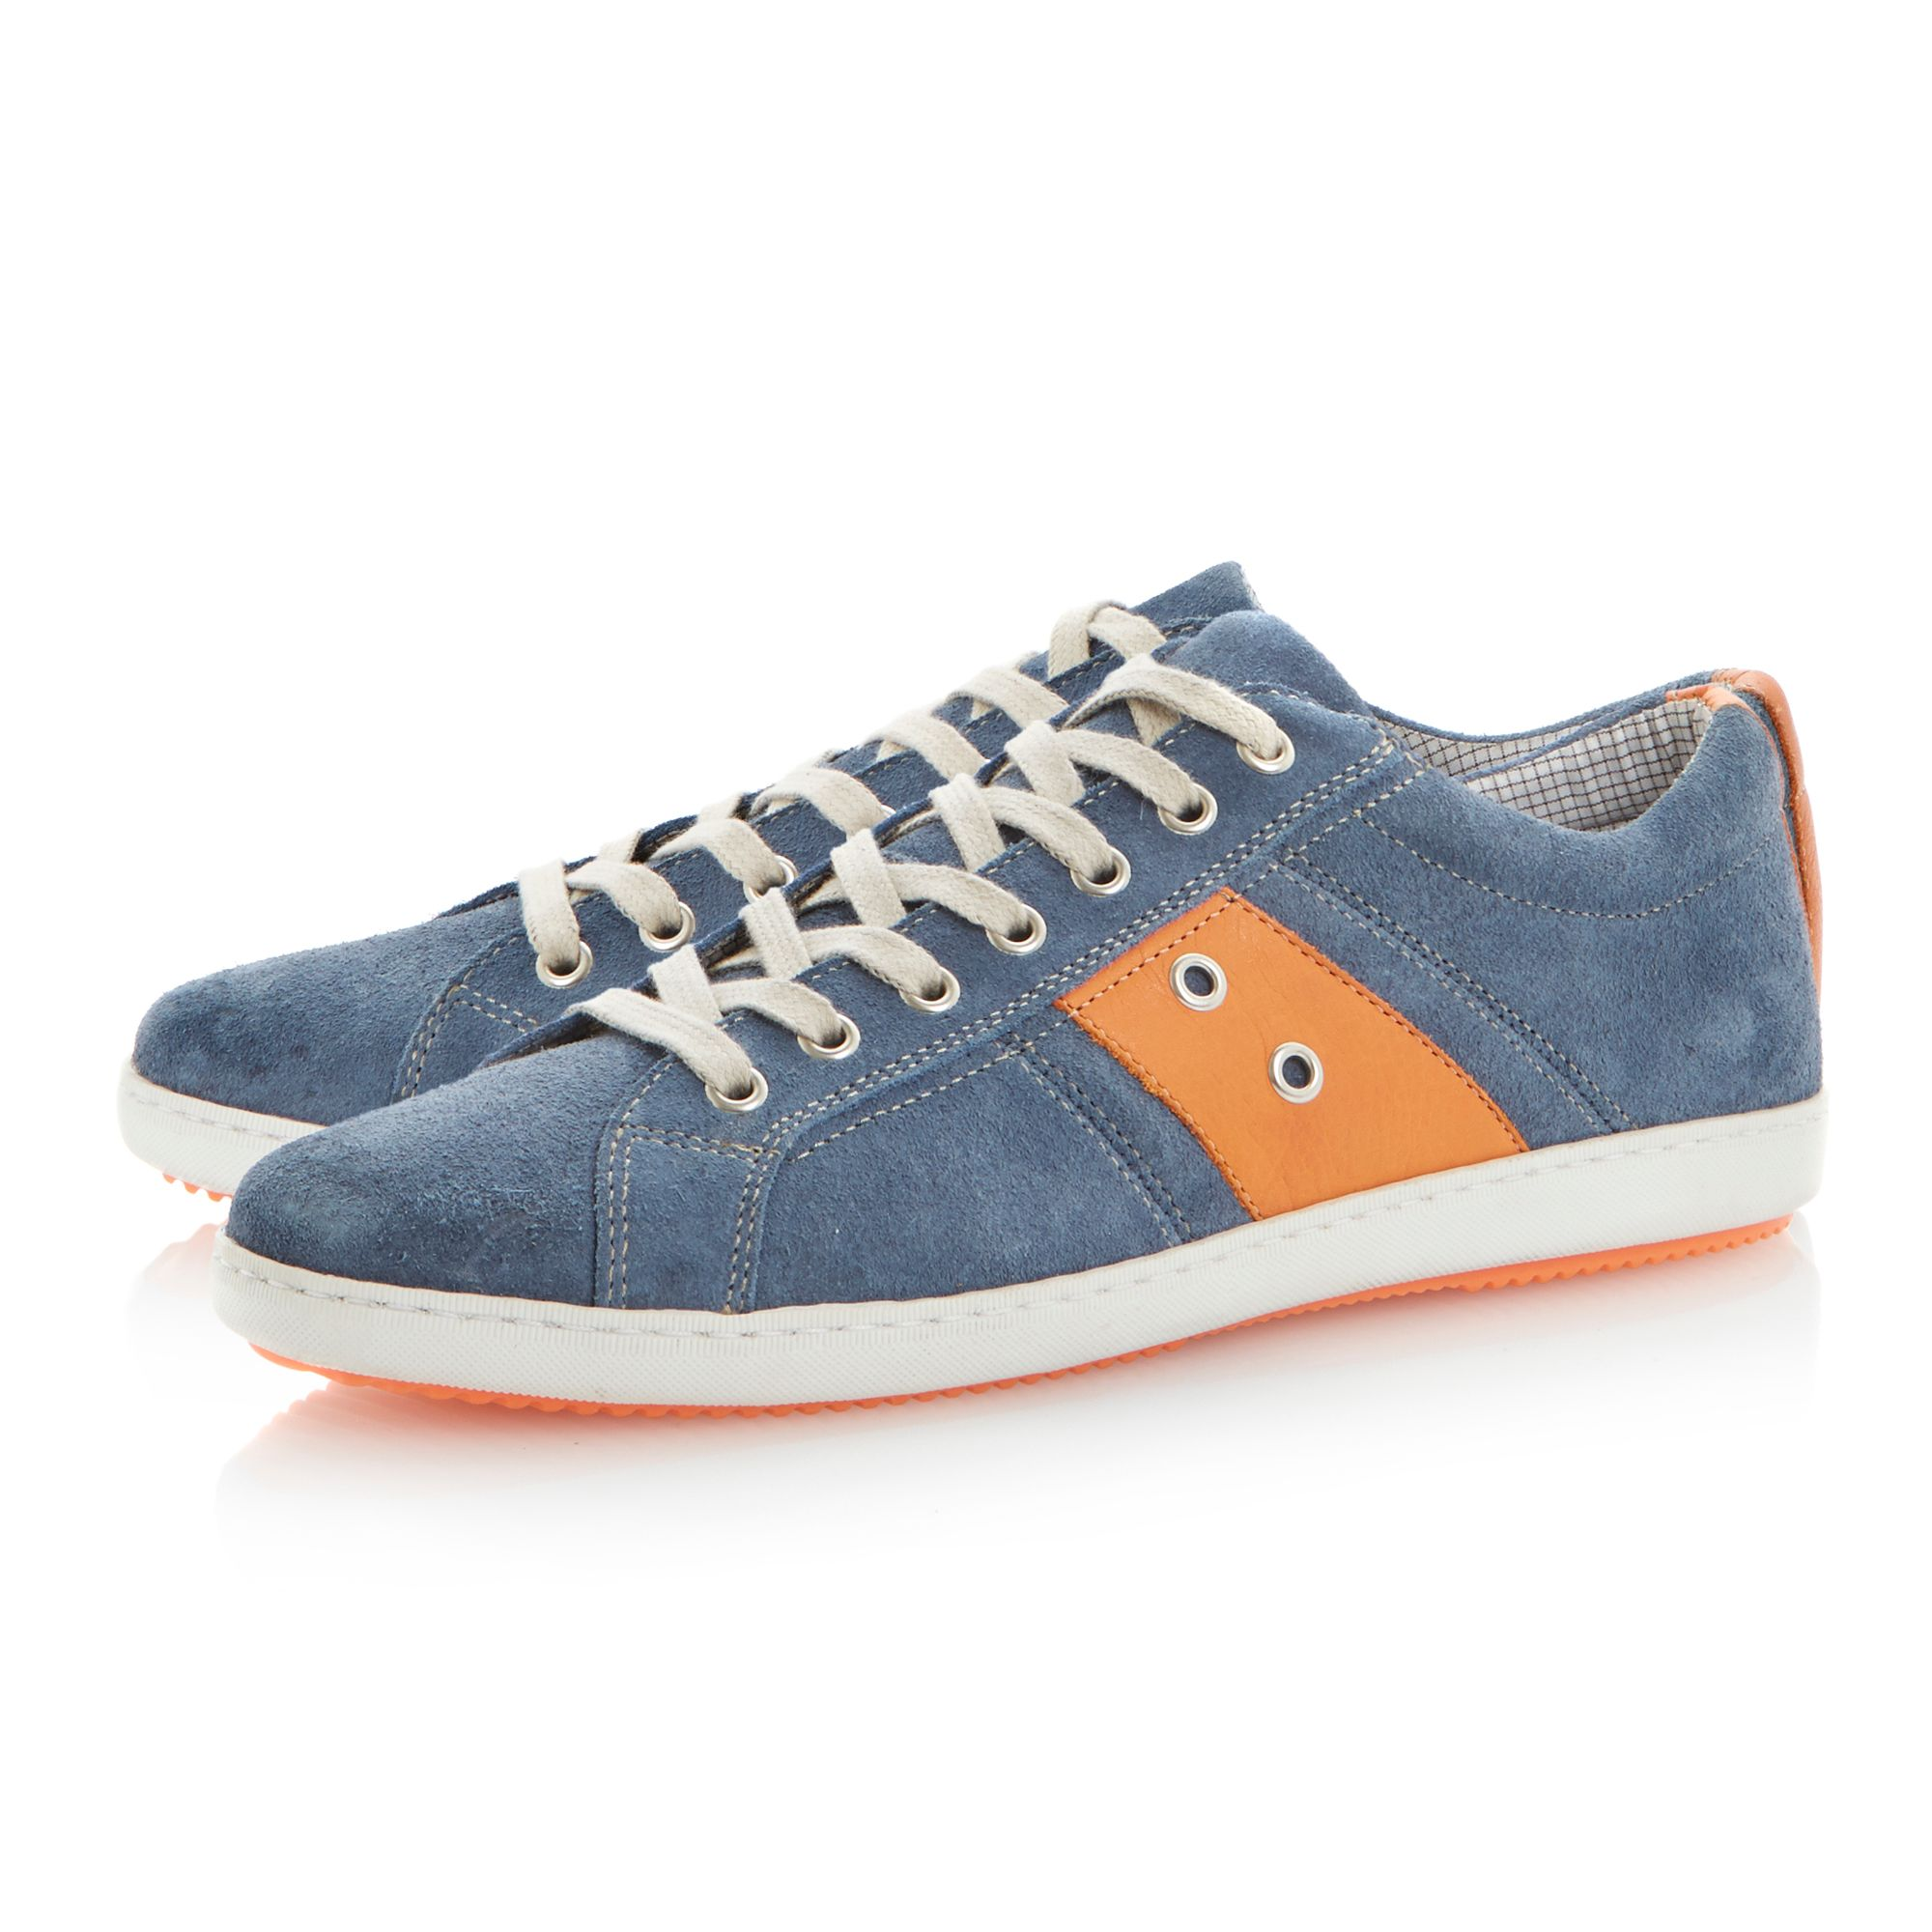 Topple lace up colour pop side stripe sneakers